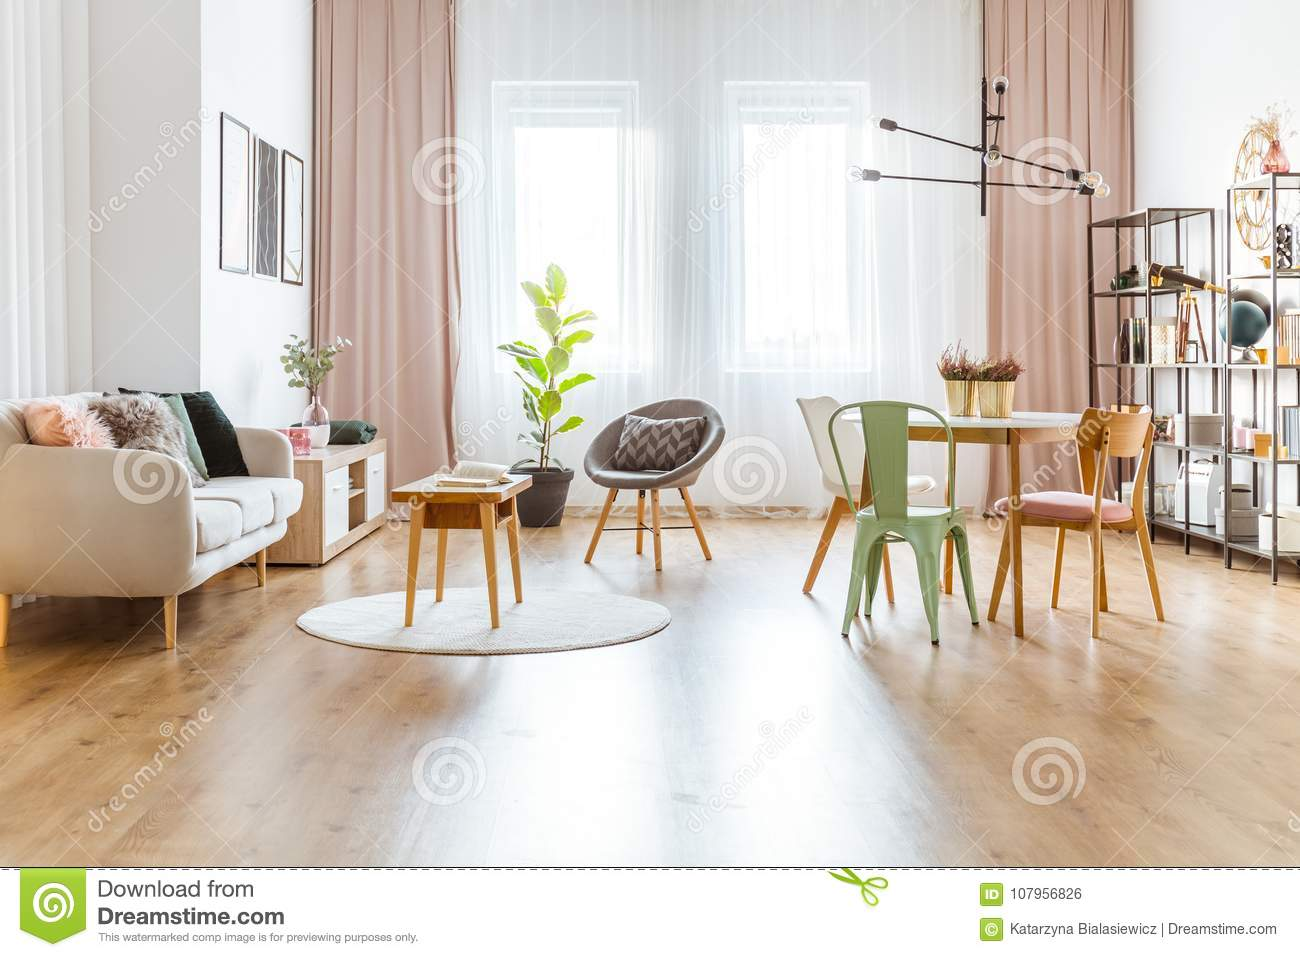 Multifunctional Living Room Interior Stock Photo - Image of lamp ...